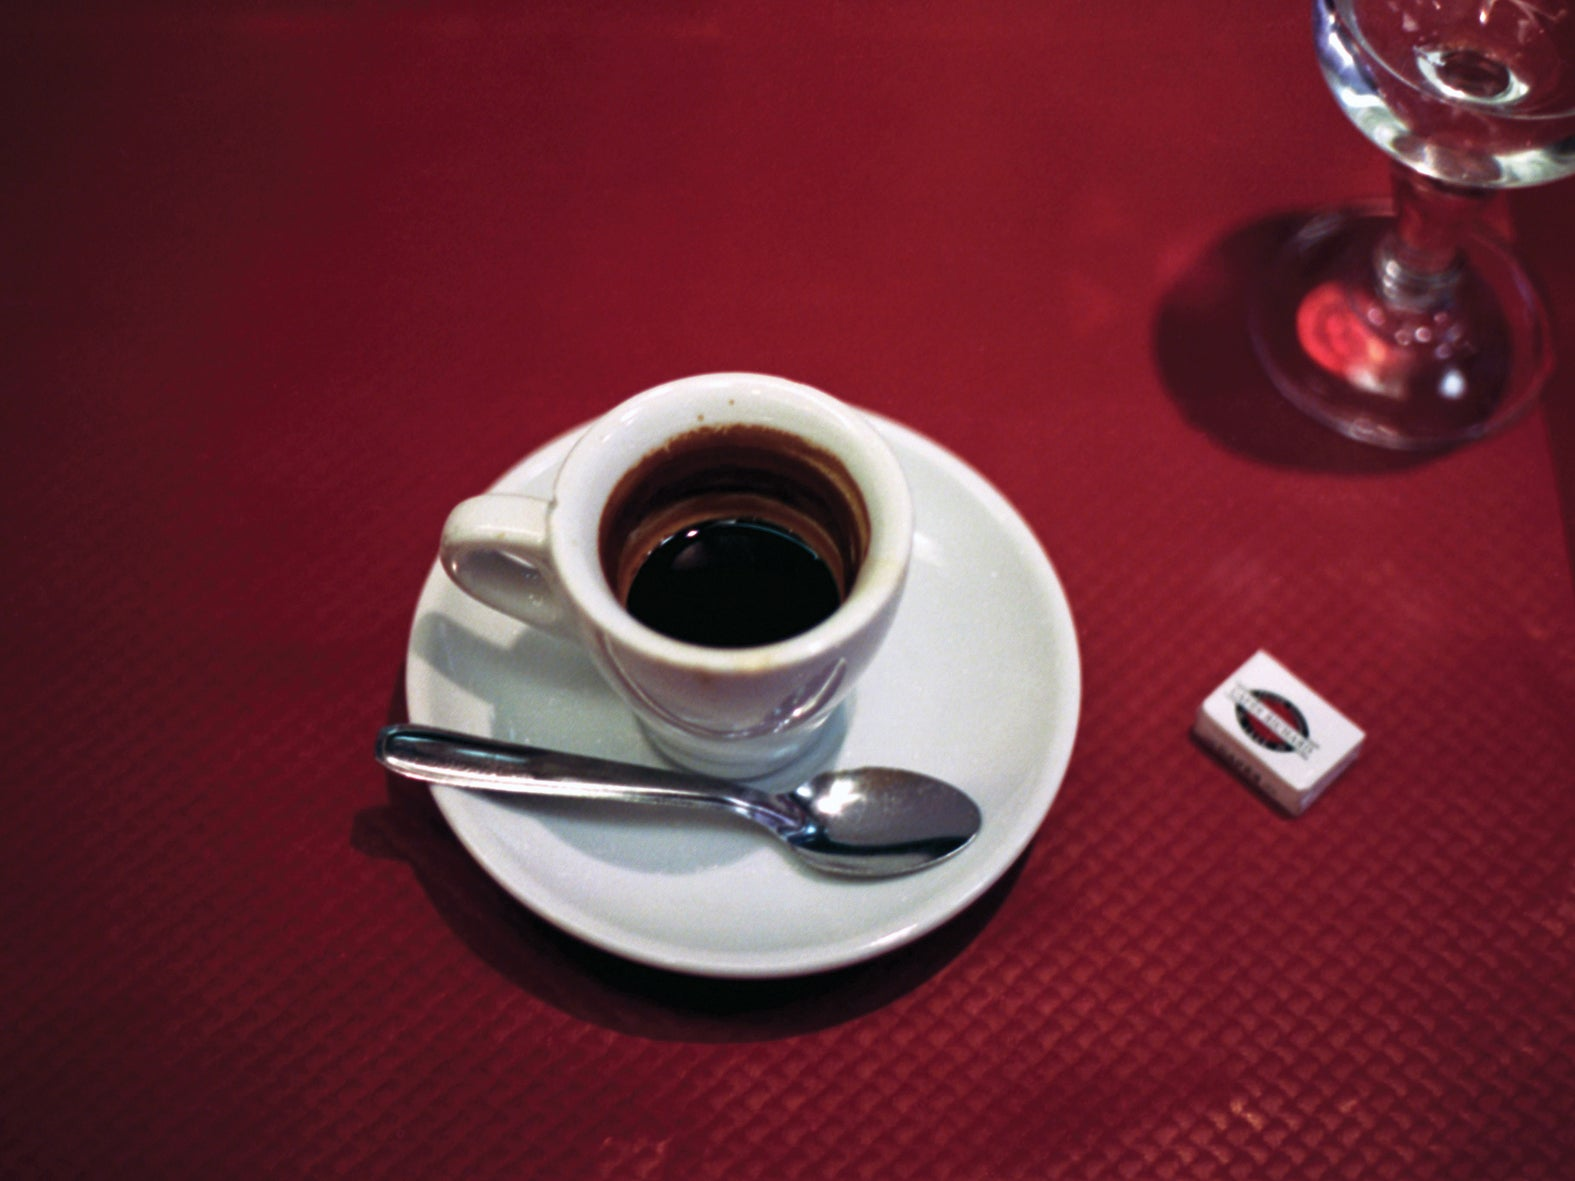 I've floated through life on a river of coffee and wine. So why do I write mainly about the latter?